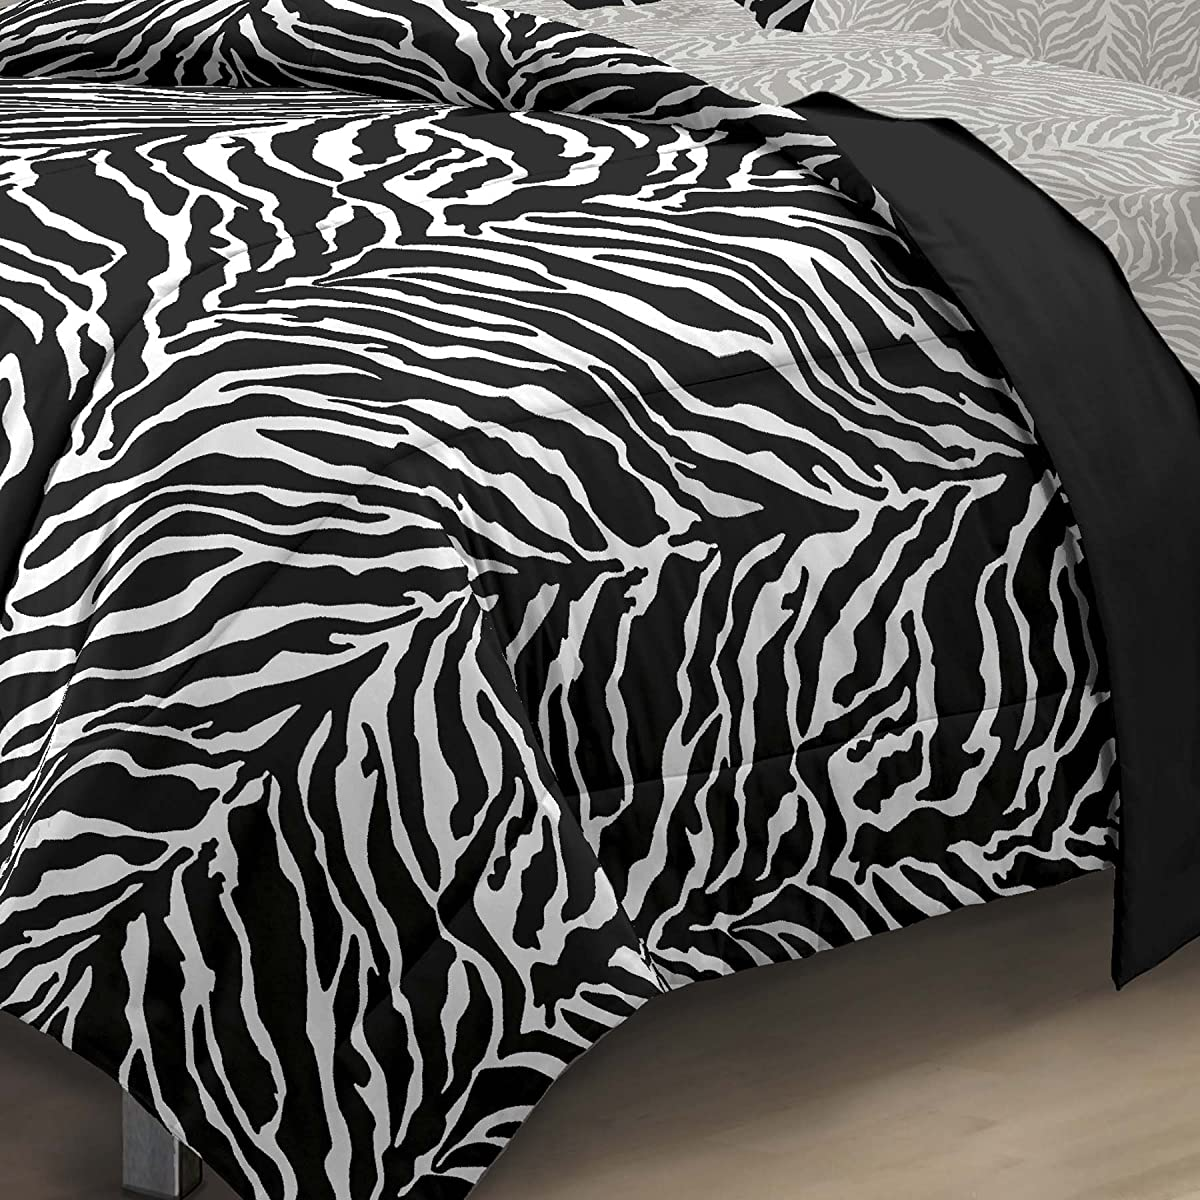 My Room Zebra Ultra Soft Microfiber Comforter Sheet Set,White/ Black, Twin/Twin X-Large